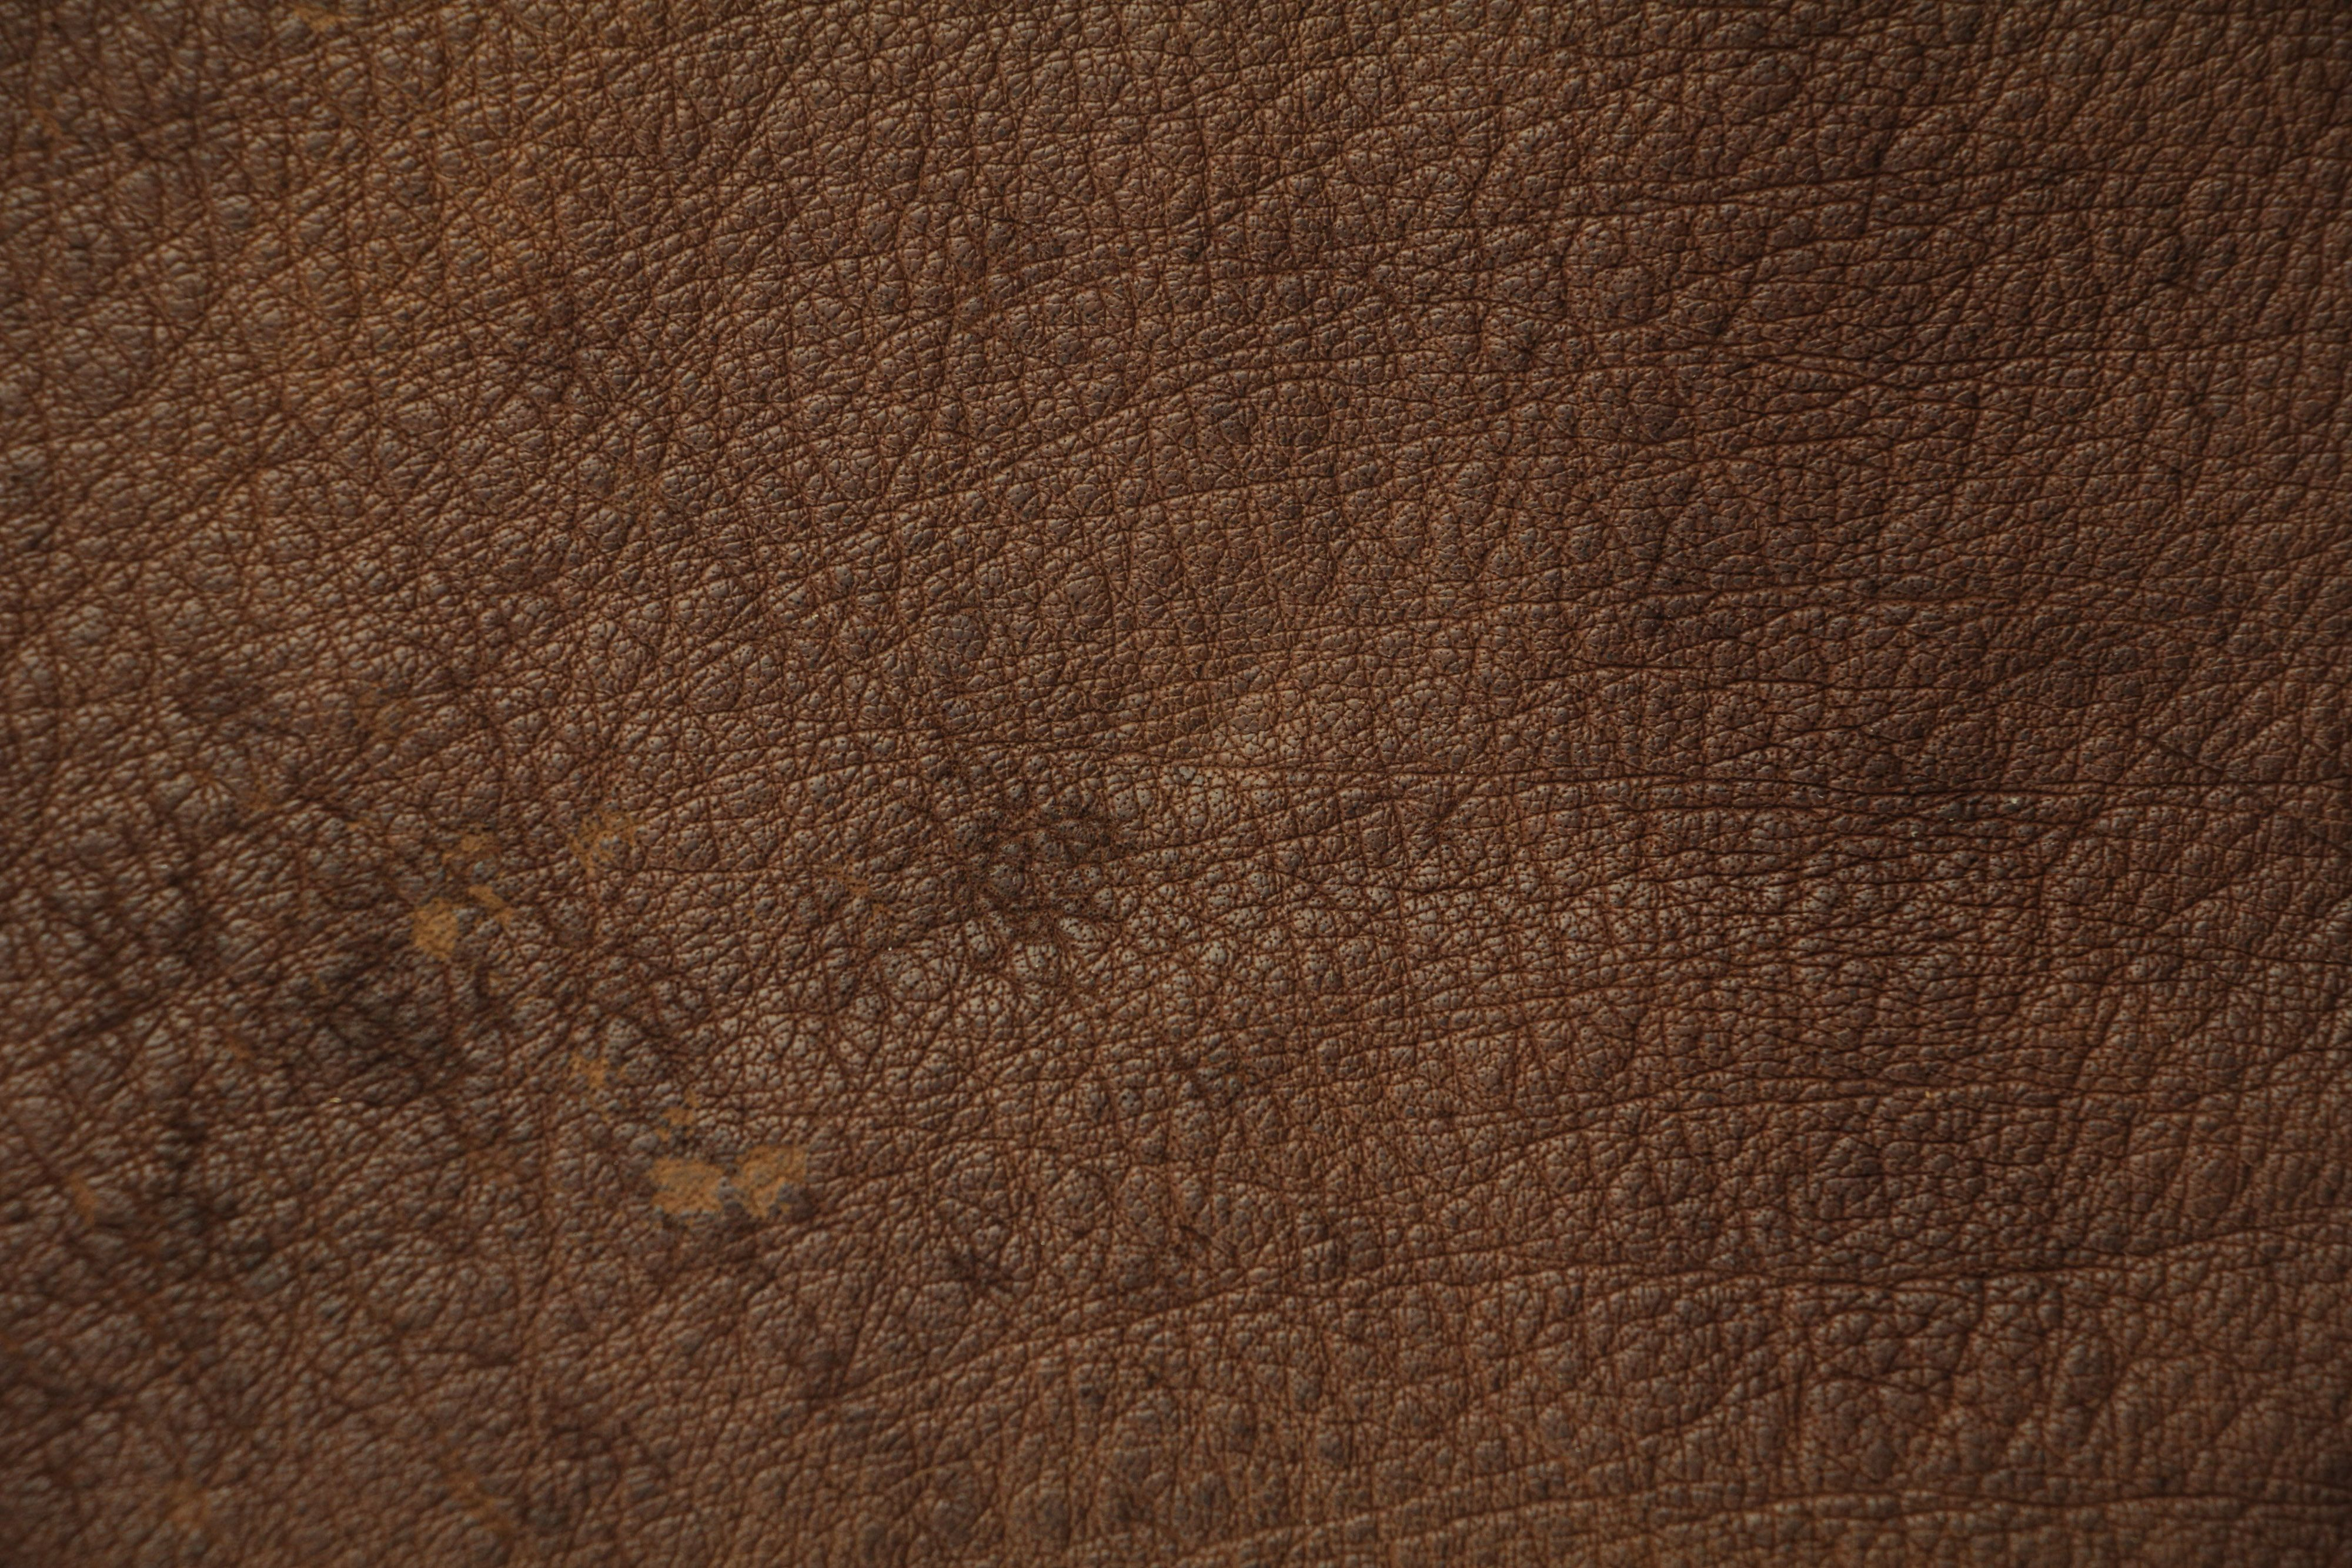 Brown Leather Texture Spotted High Resolution Stock Photo